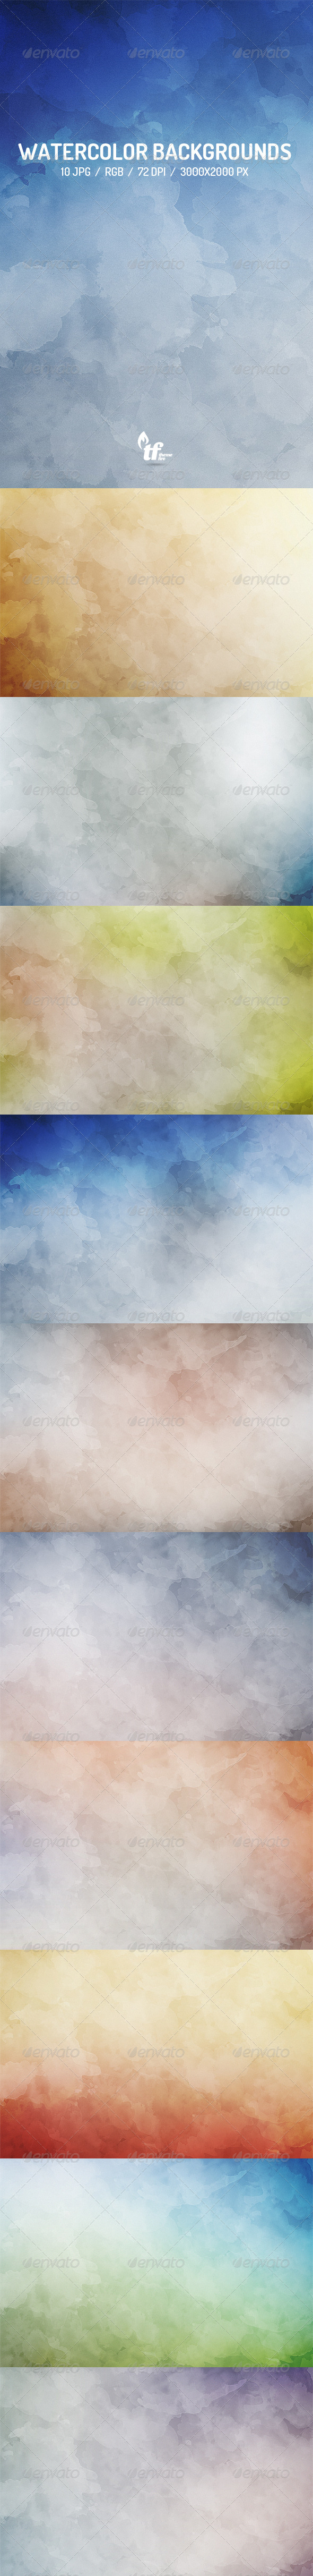 GraphicRiver 10 Watercolor Backgrounds Vol.3 7515948